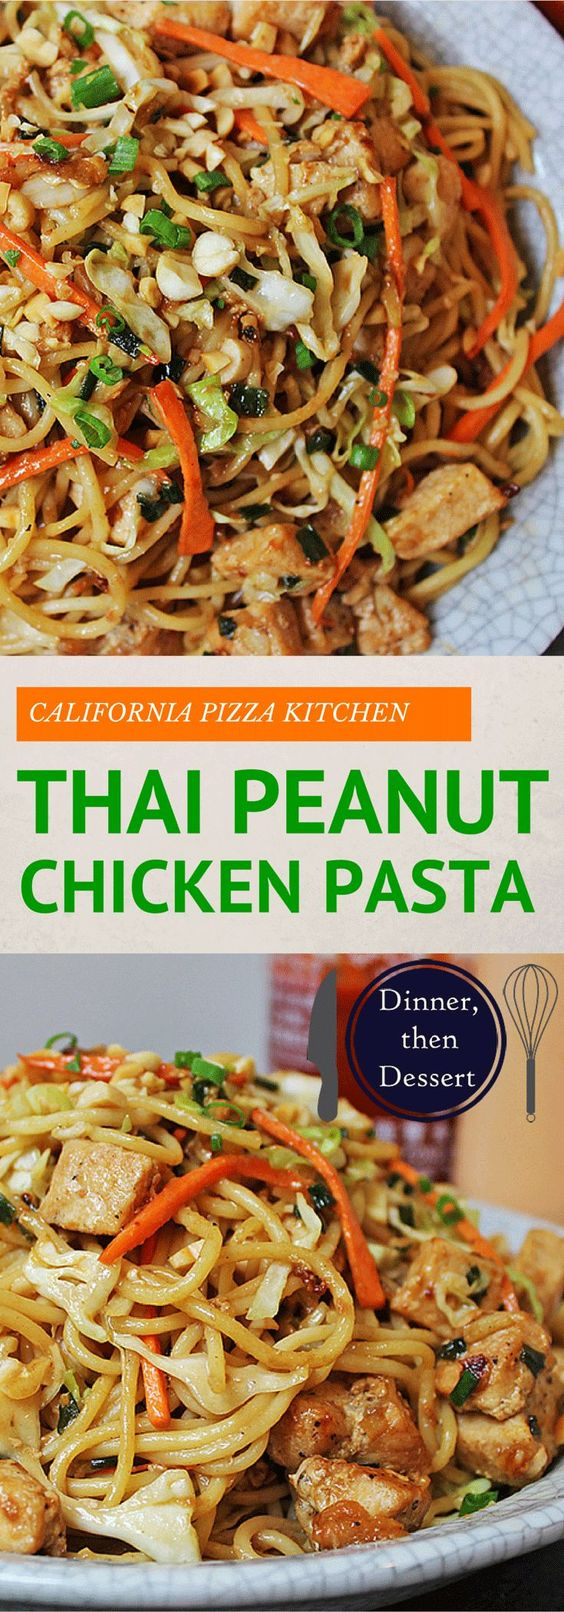 Pizza, Vegetables And Sauces On Pinterest